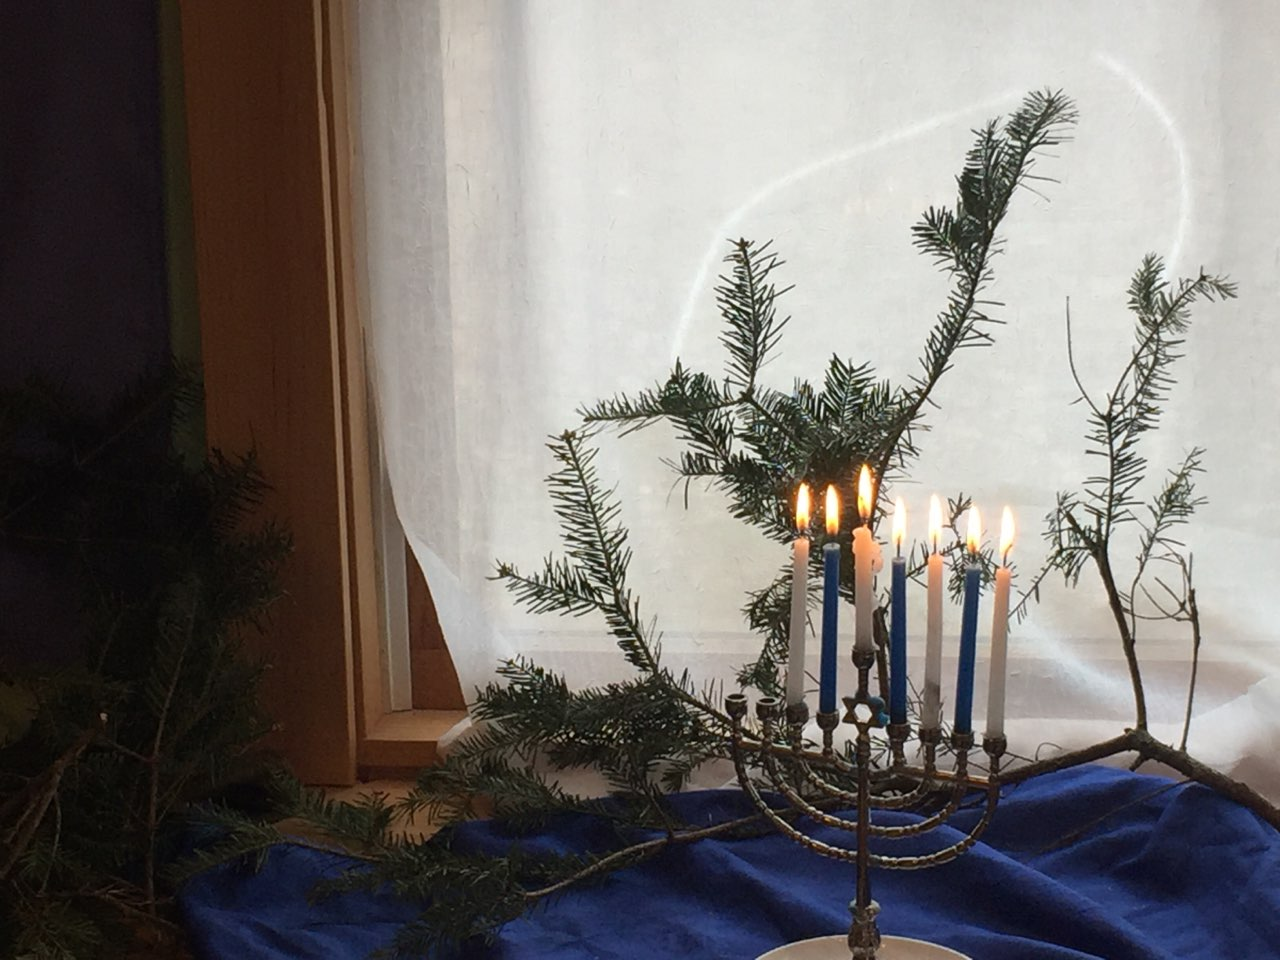 """On Hanukkah, the first dark night, light yourself a candle bright. I'll you, if you will me invite, to dance within that gentle light."" — Nicholas Gordon"